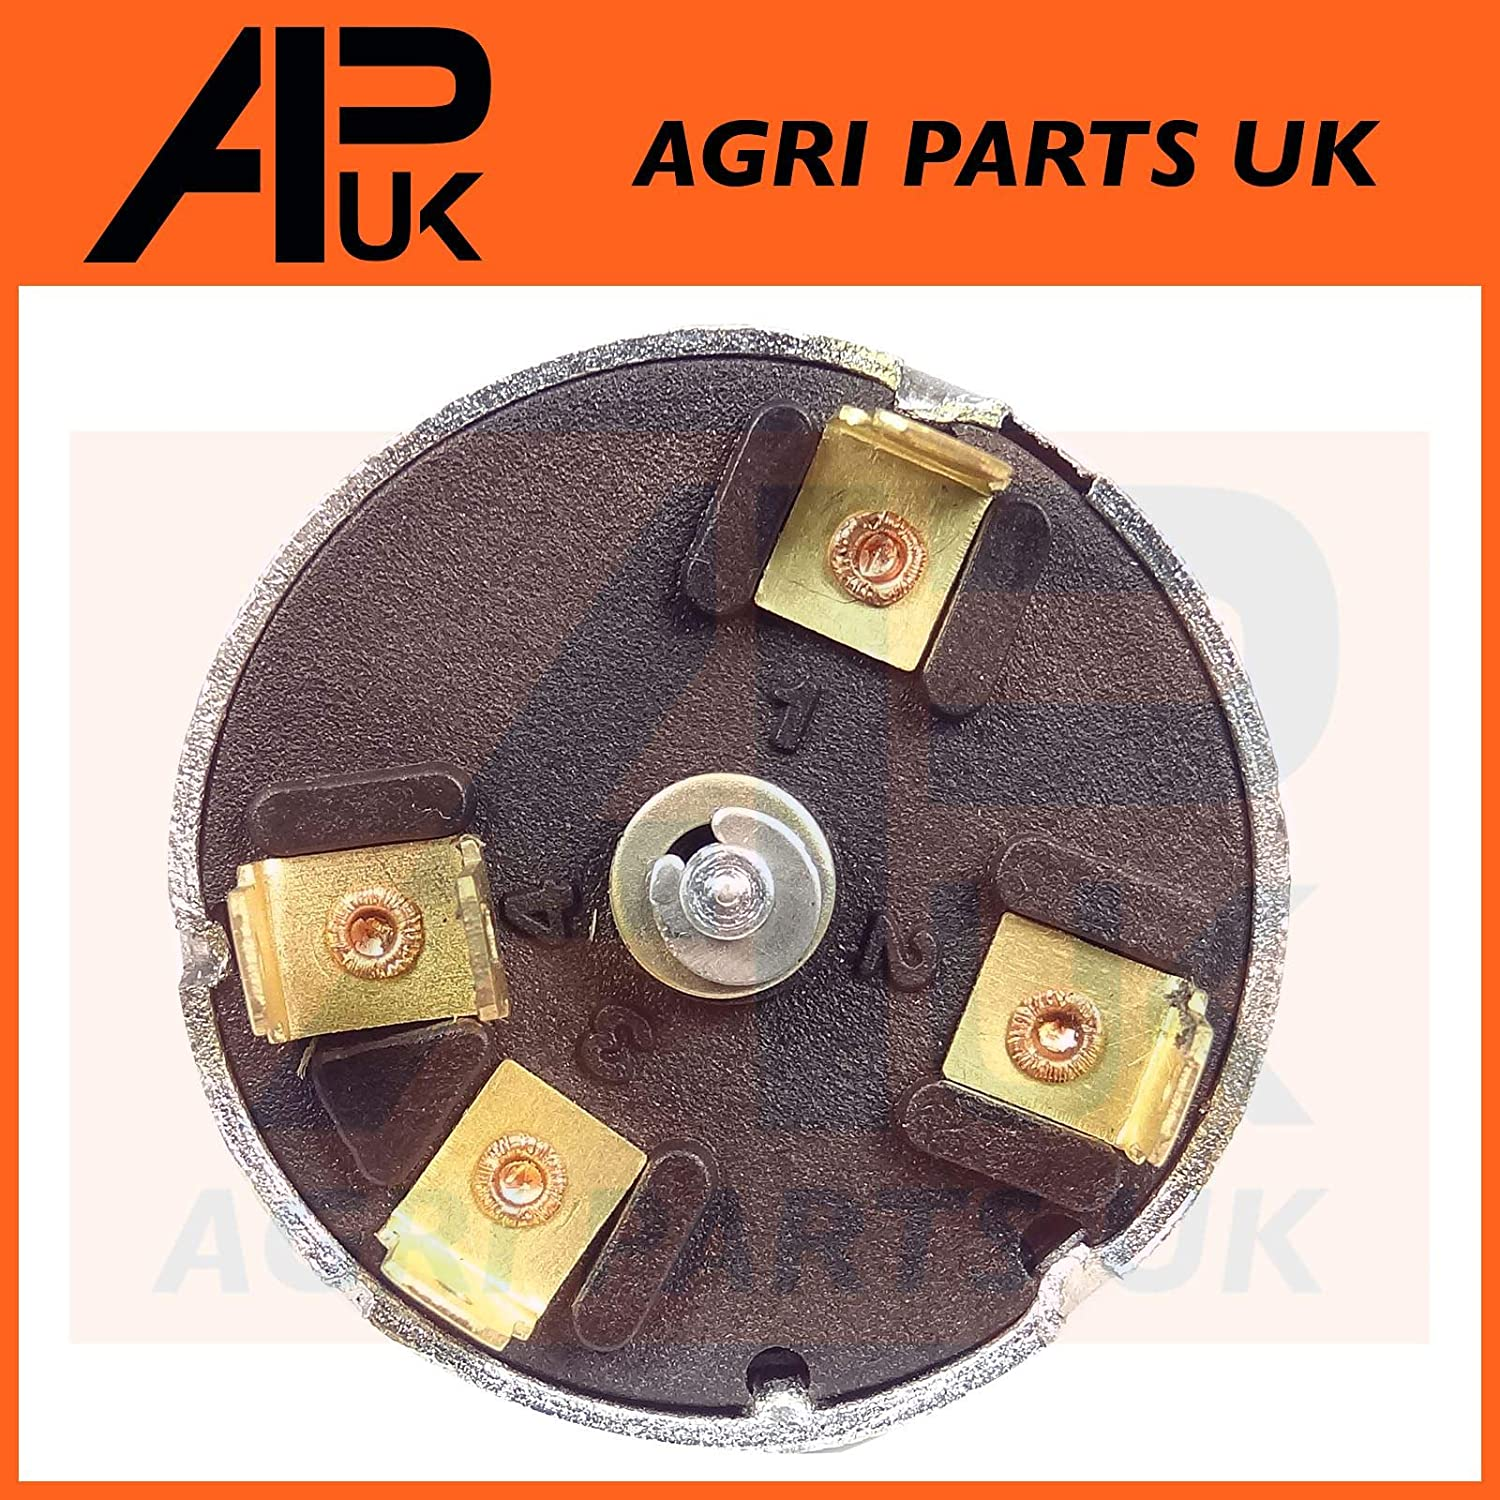 APUK Headlight Light Indicator Switch compatible with Massey Ferguson 675 690 698 699 1004 Tractor